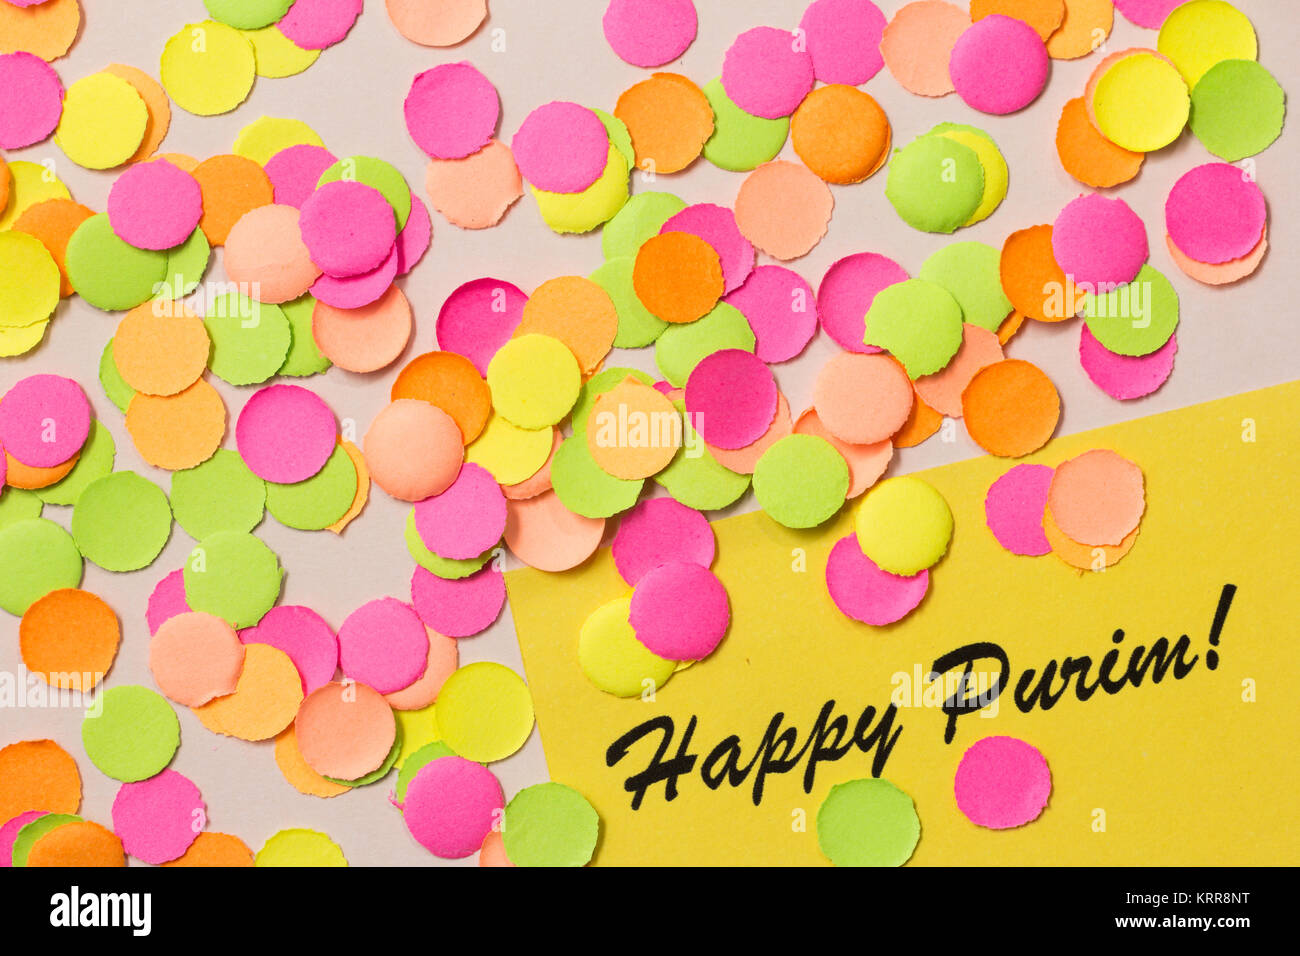 Purim celebration, Jewish tradition. Carnival party background concept, space for text. Colorful confetti spread - Stock Image